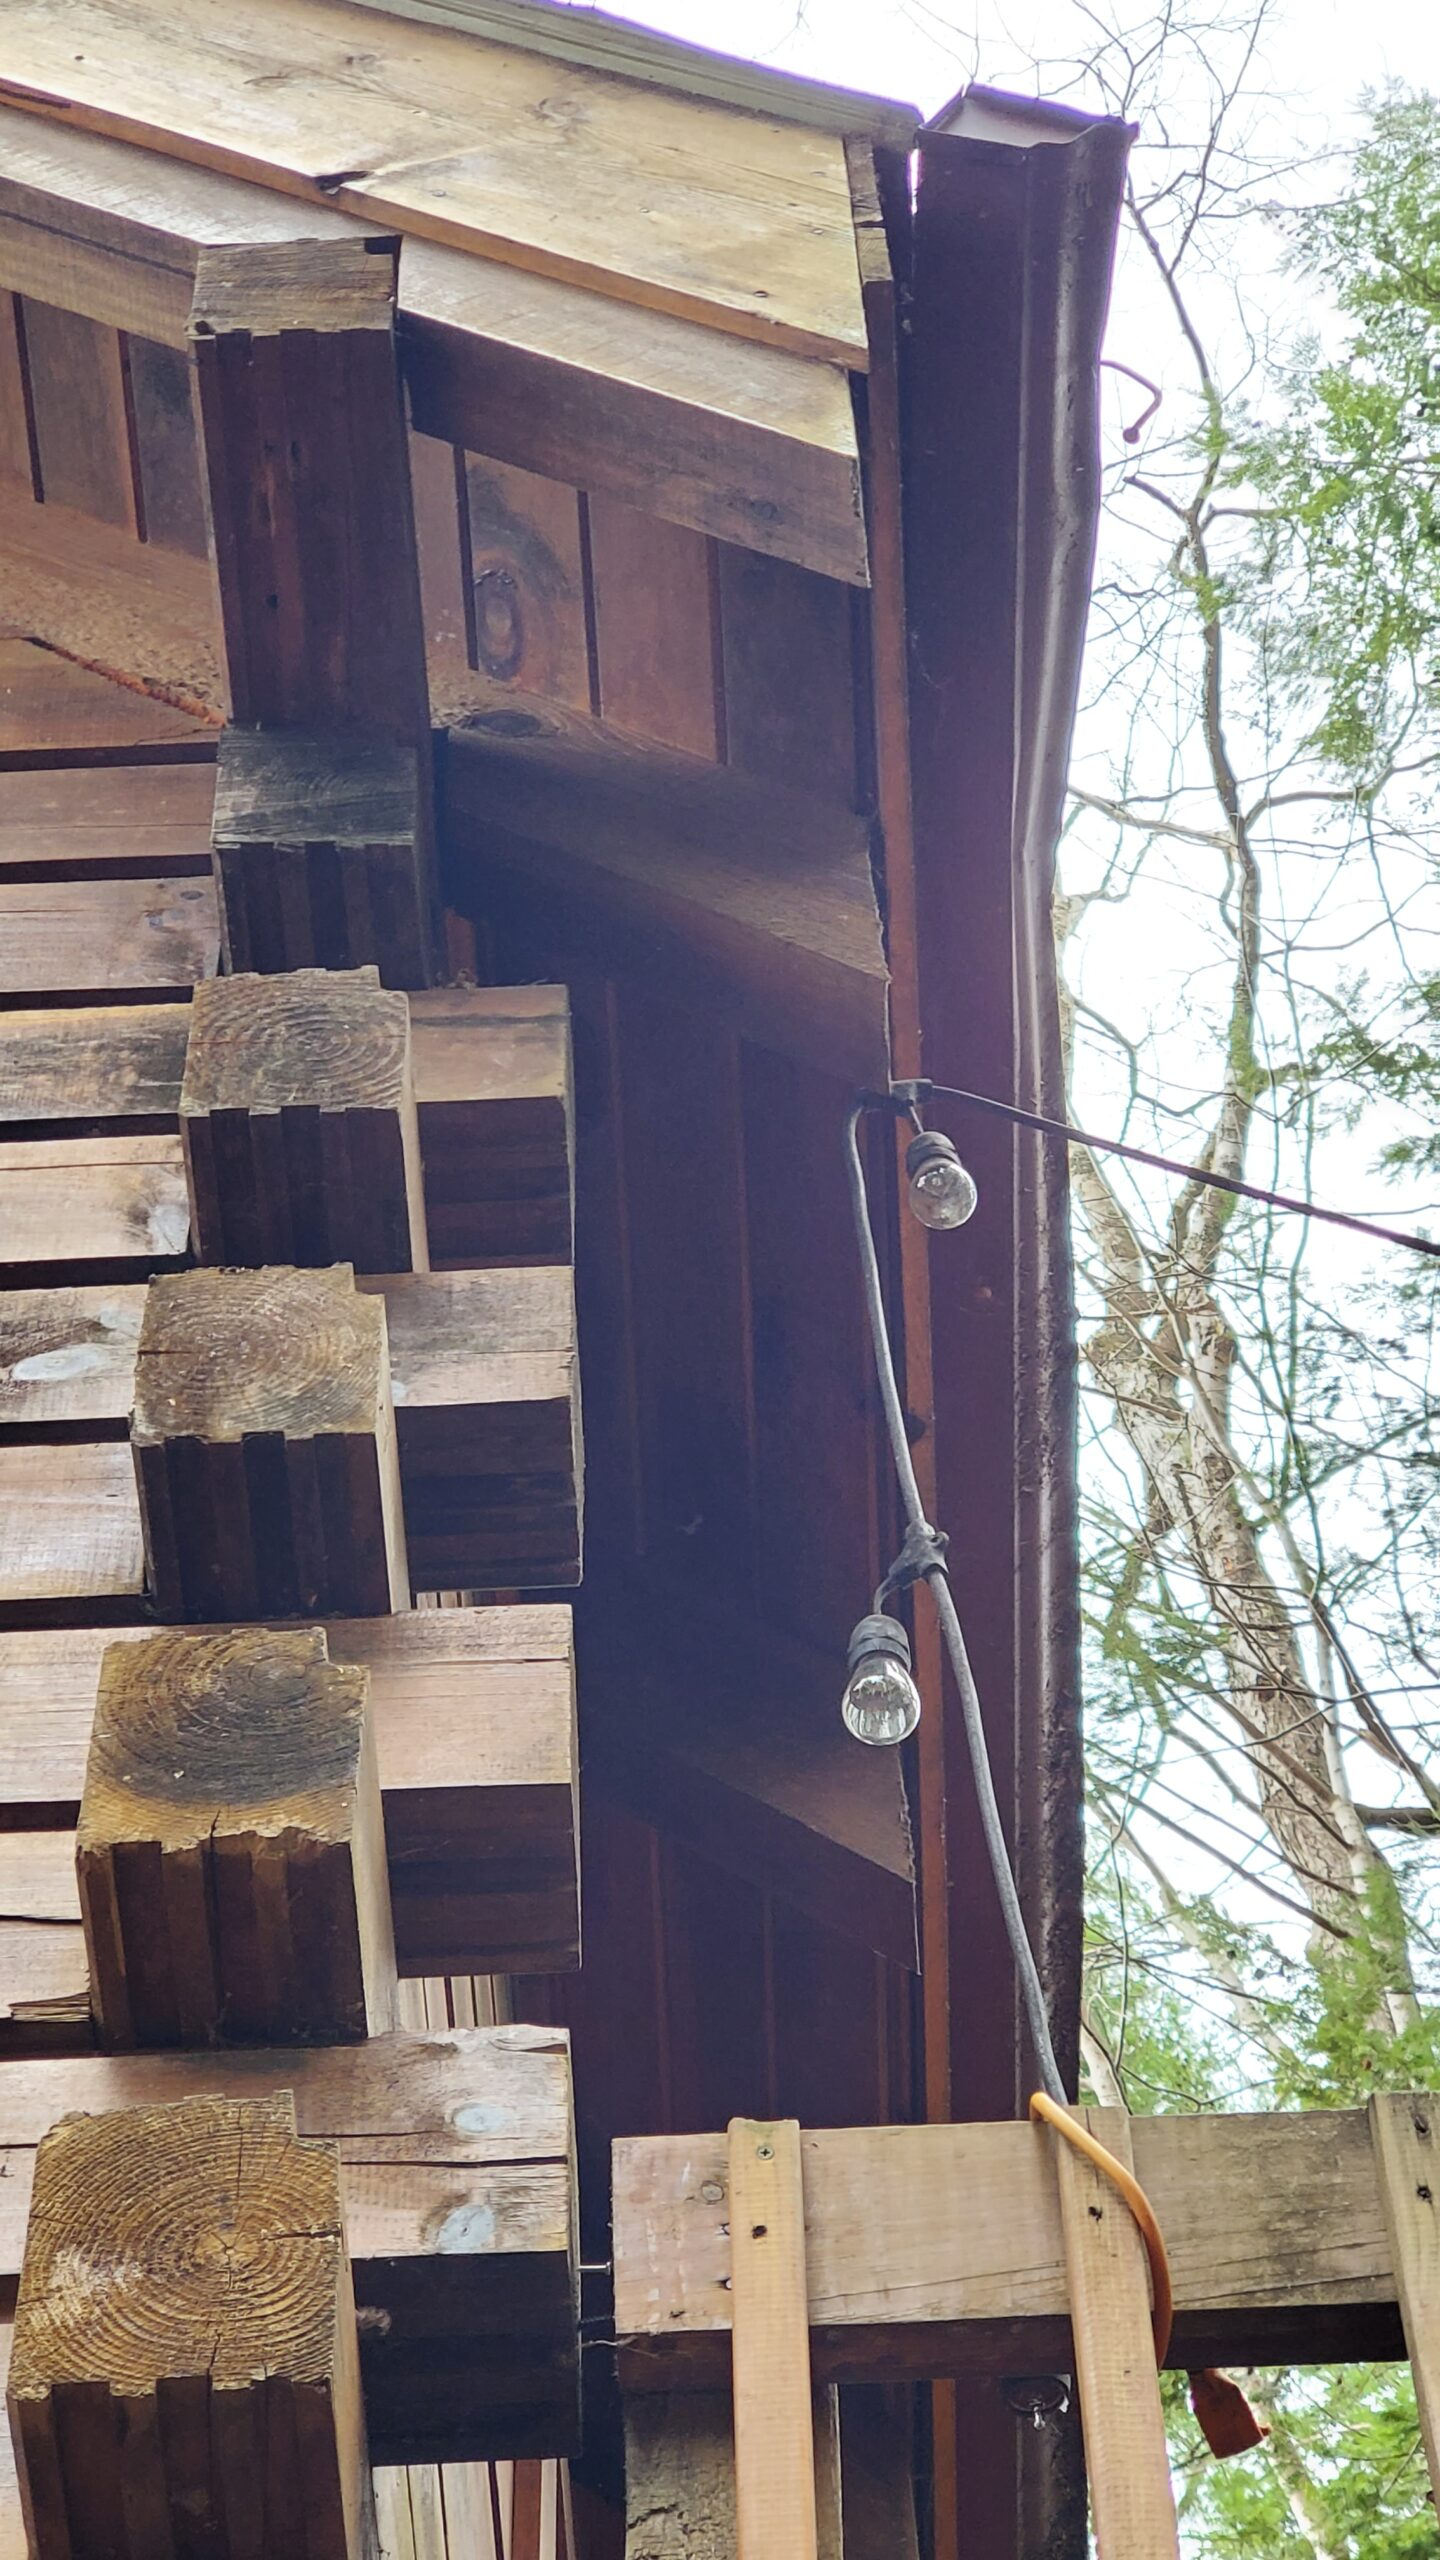 This is a picture taken from the ground of a section of gutter on a wood cabin